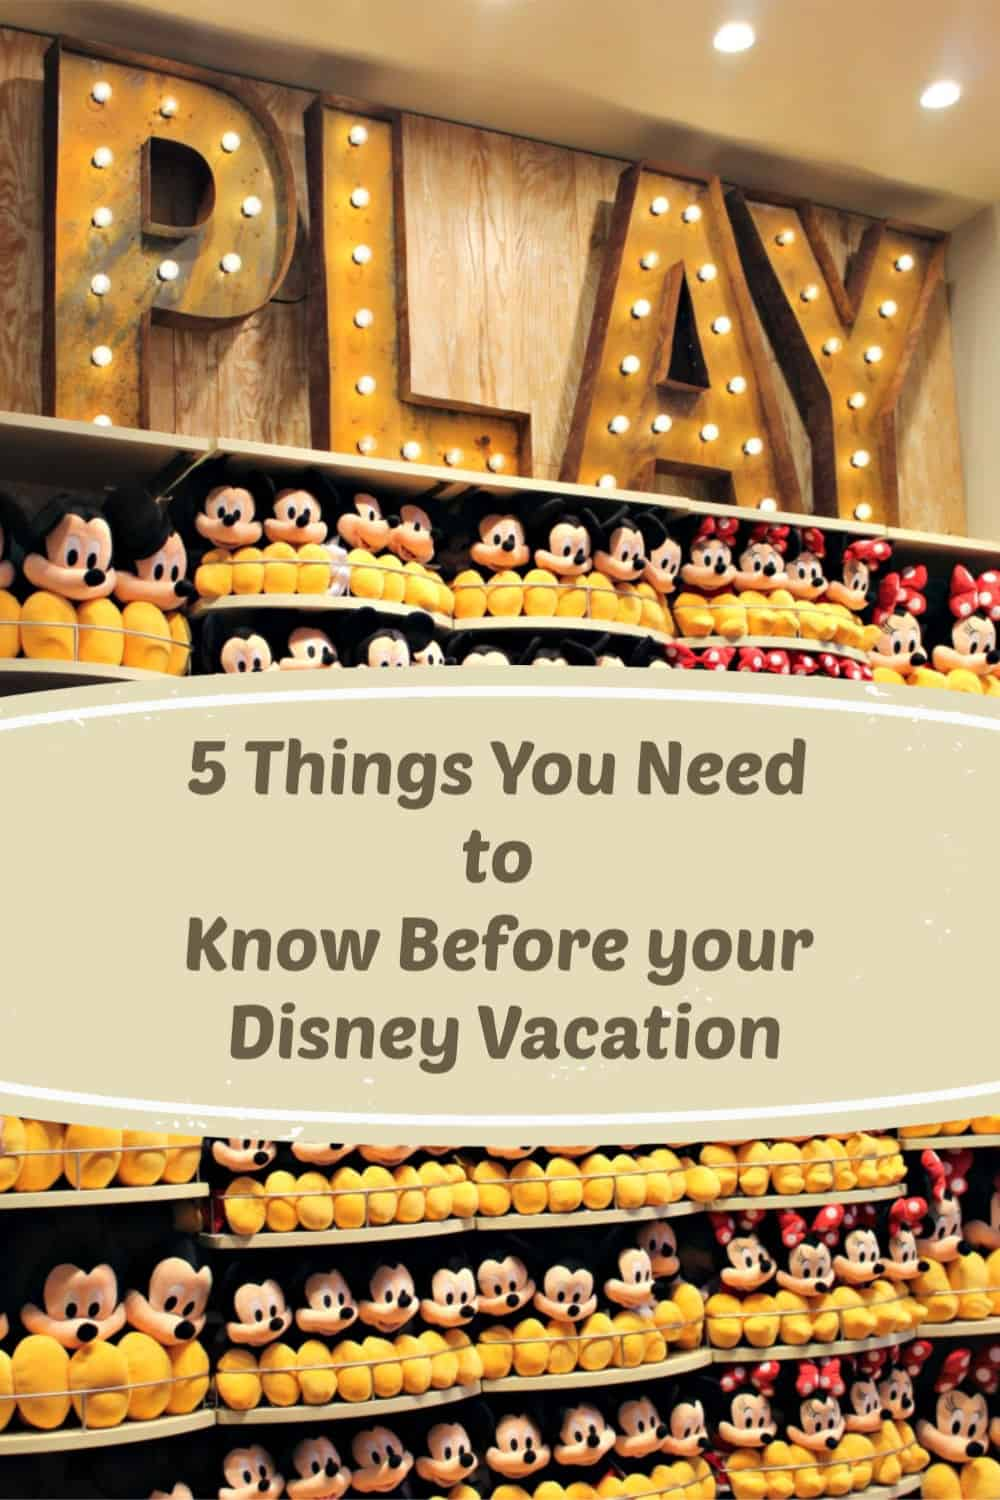 5 Things You Need to Know Before your Disney Vacation - Avoid a bad Disney trip and make sure you know these things before planning your Disney vacation